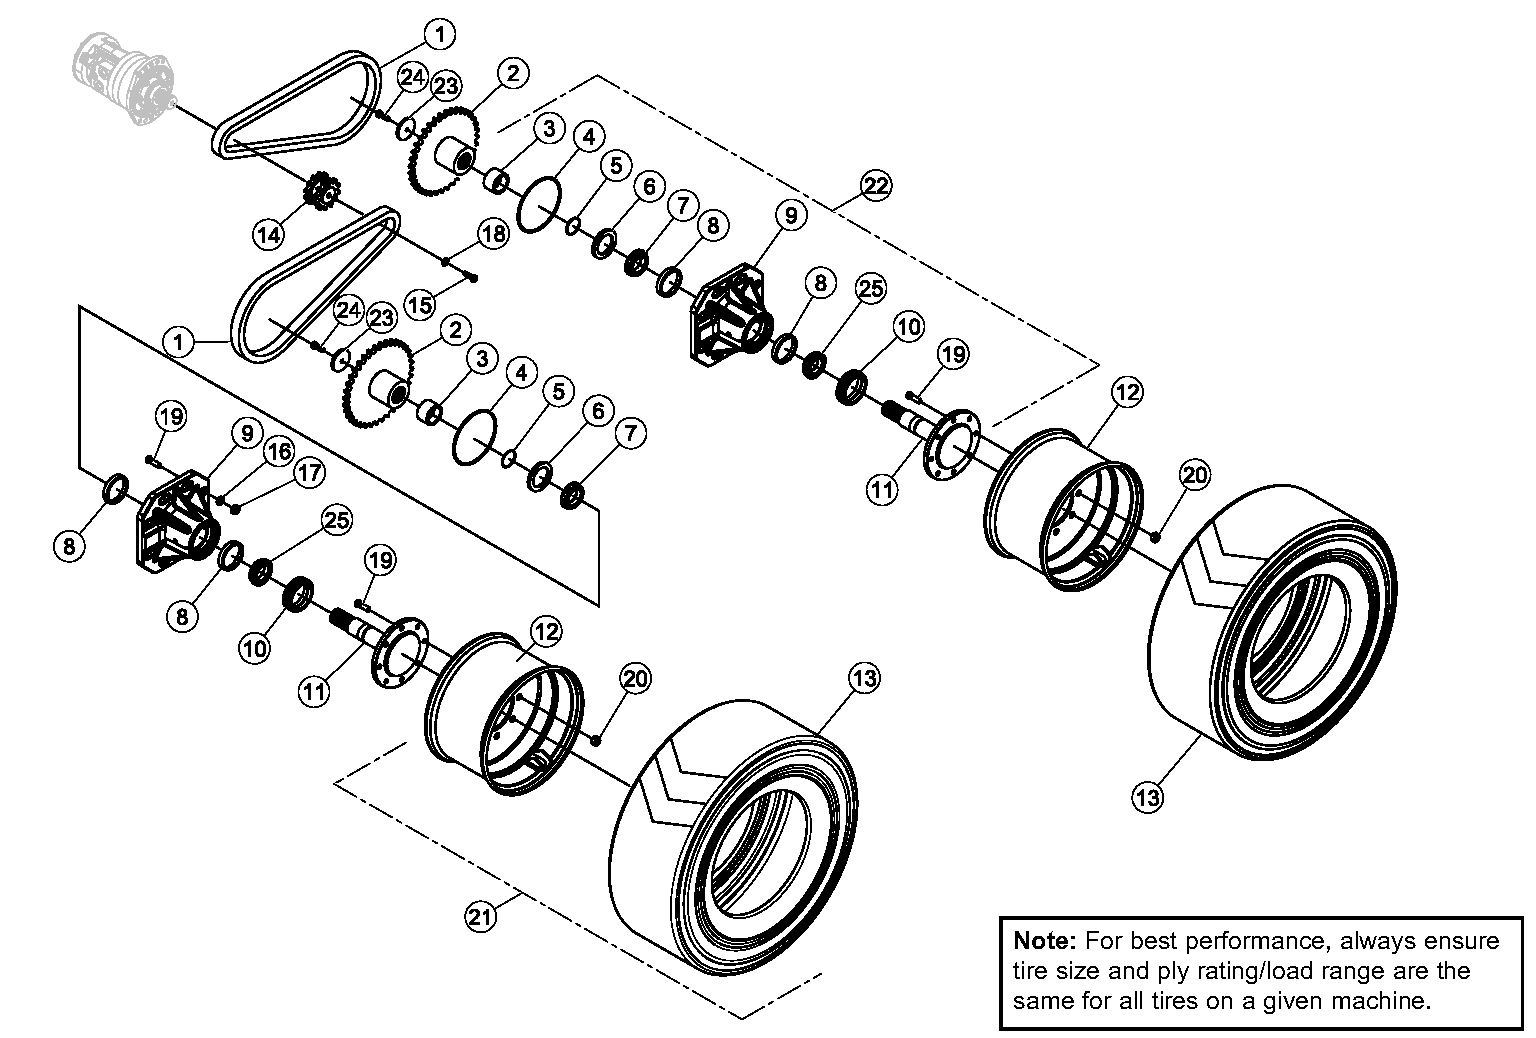 Diagram 5-2A Final Drive Assembly - Left Side